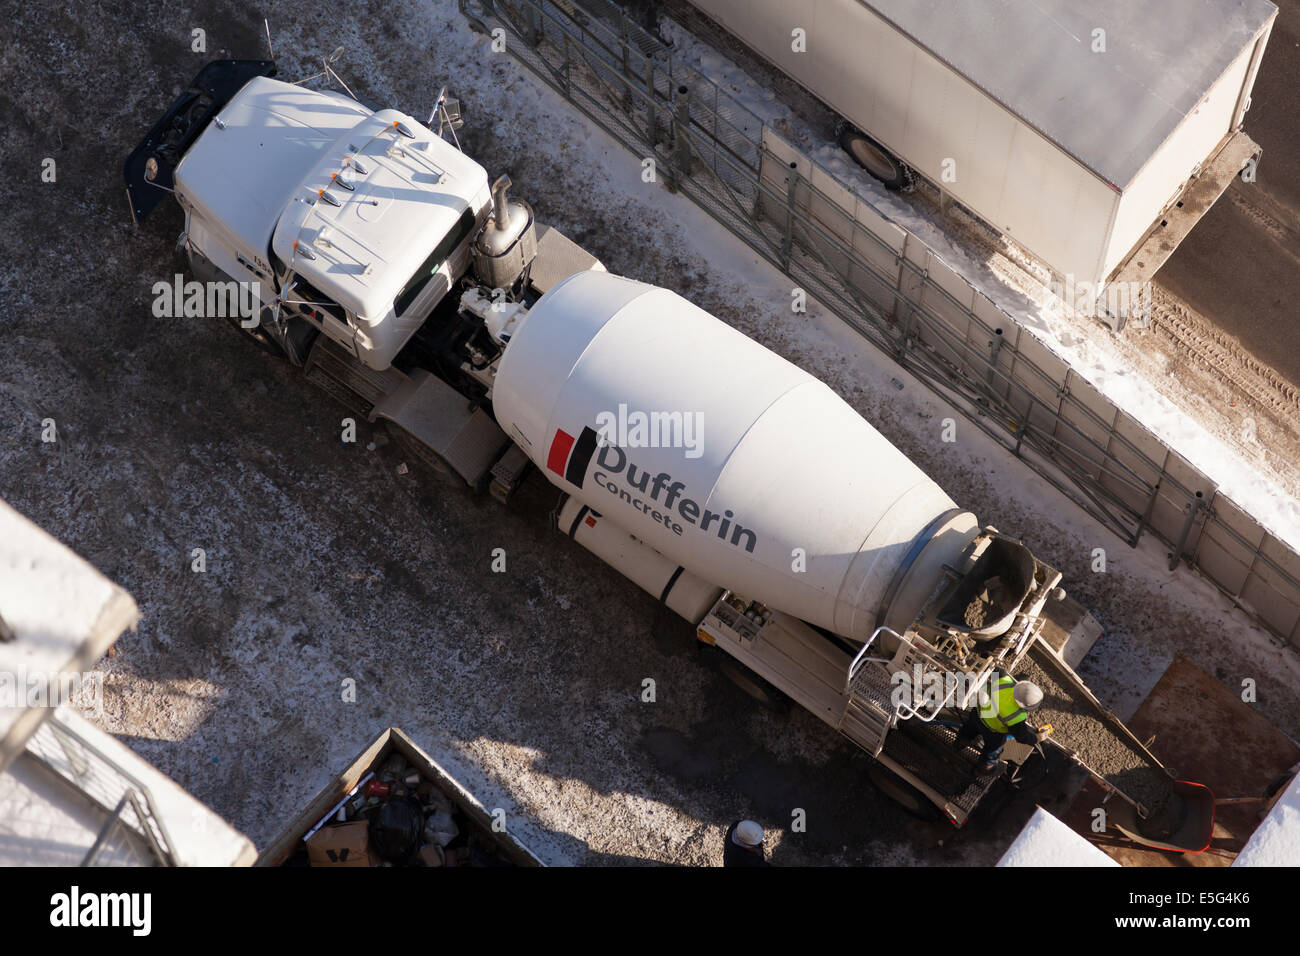 A cement mixer truck dumping a load of fresh concrete with a worker overseeing the operation. Taken from overhead - Stock Image